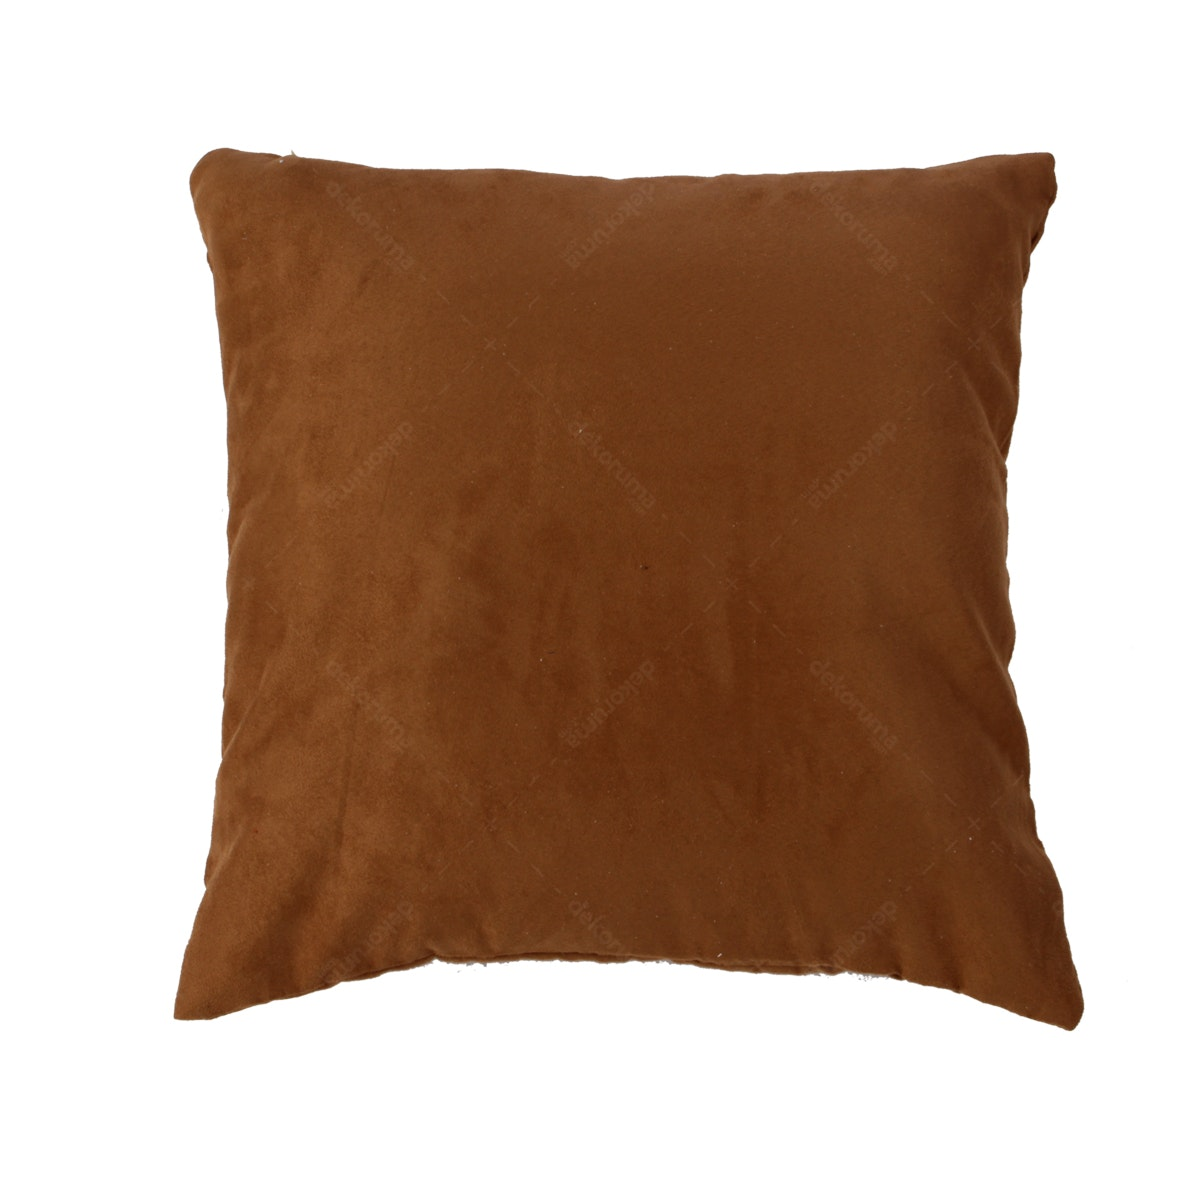 Maiika Plan Suede Brown Cover Pillow 45x45cm